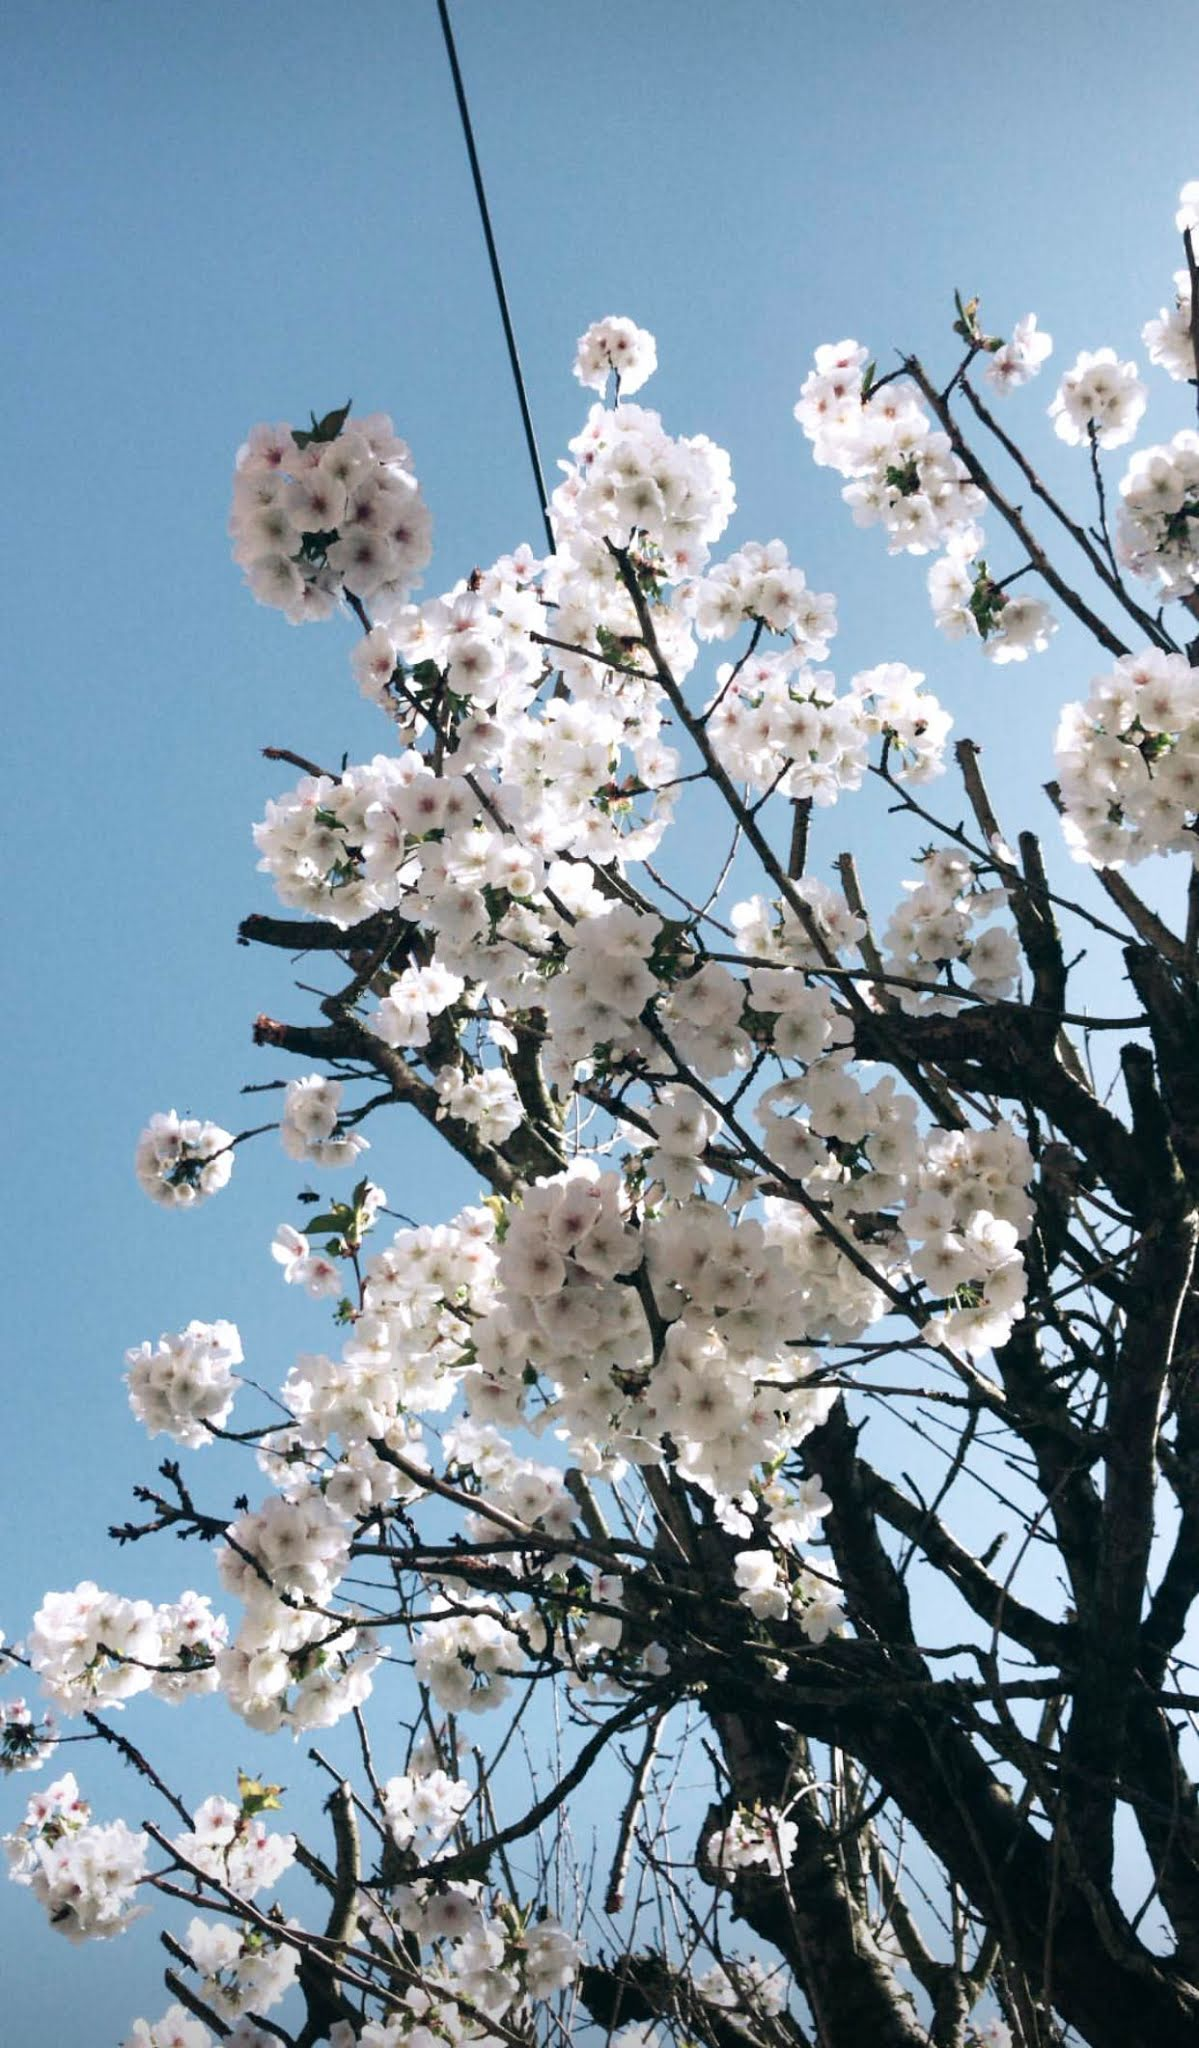 Blue skies and blossom trees